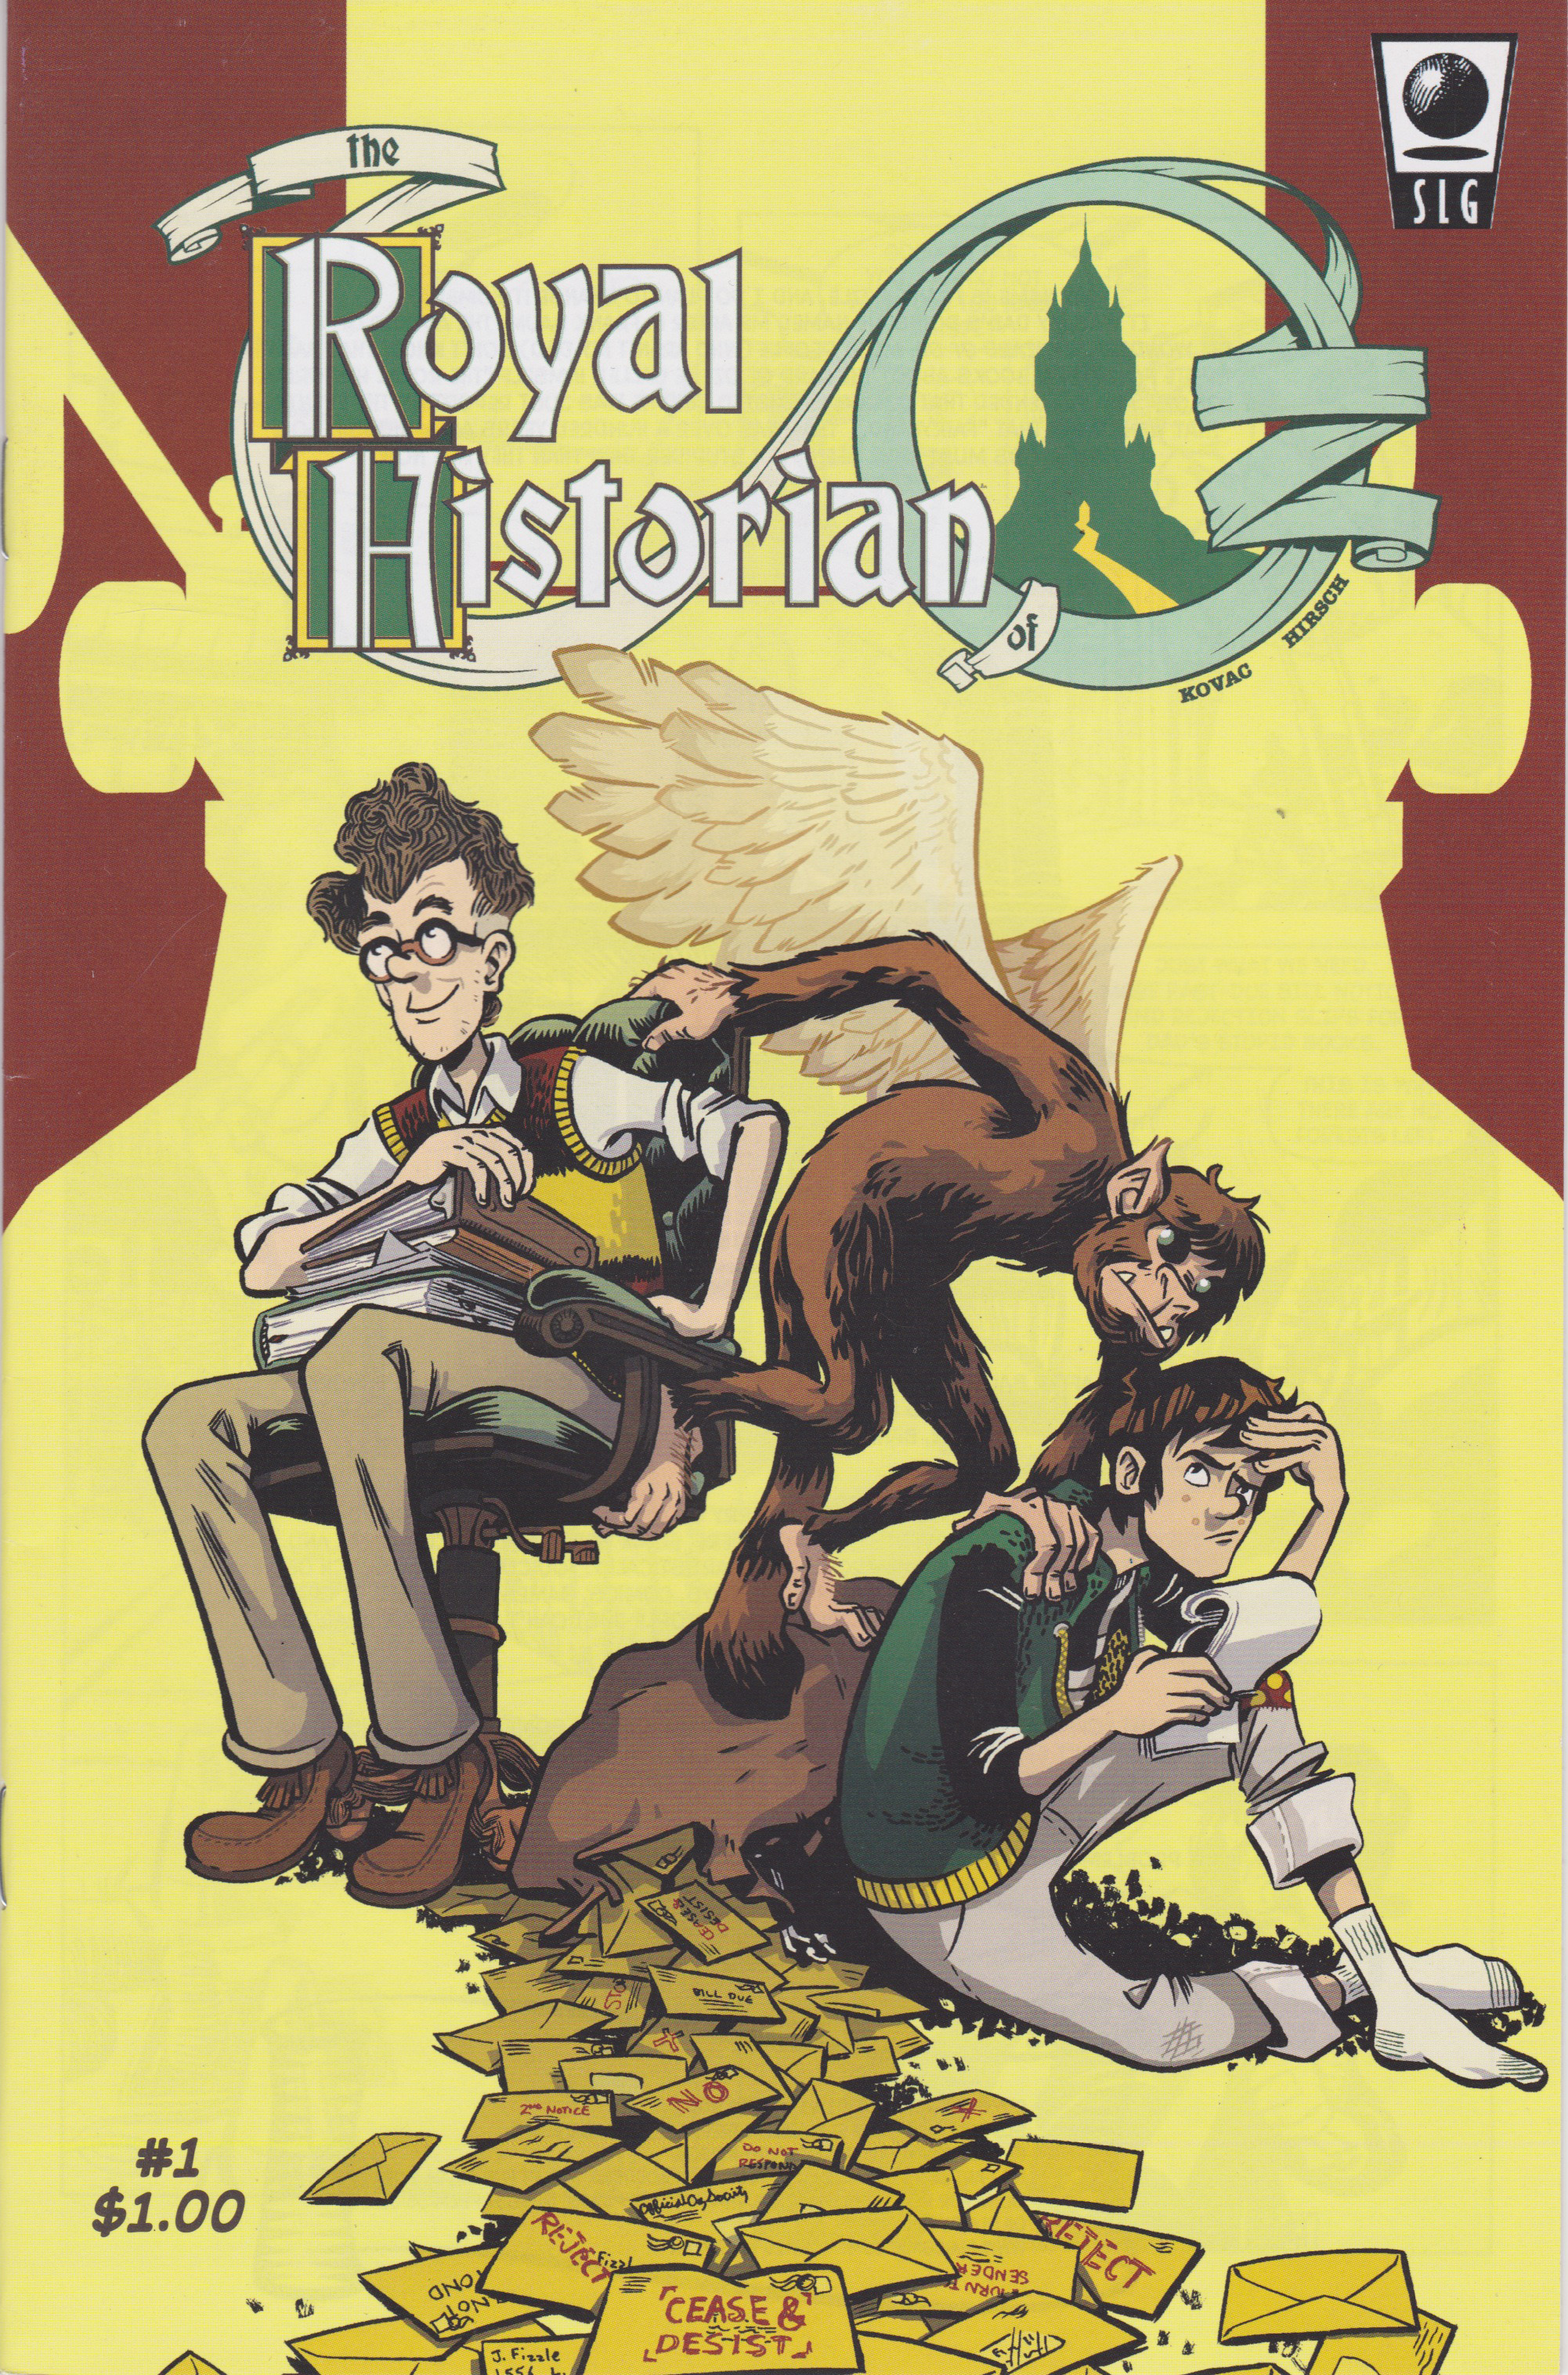 Royal Historian of Oz issue #1